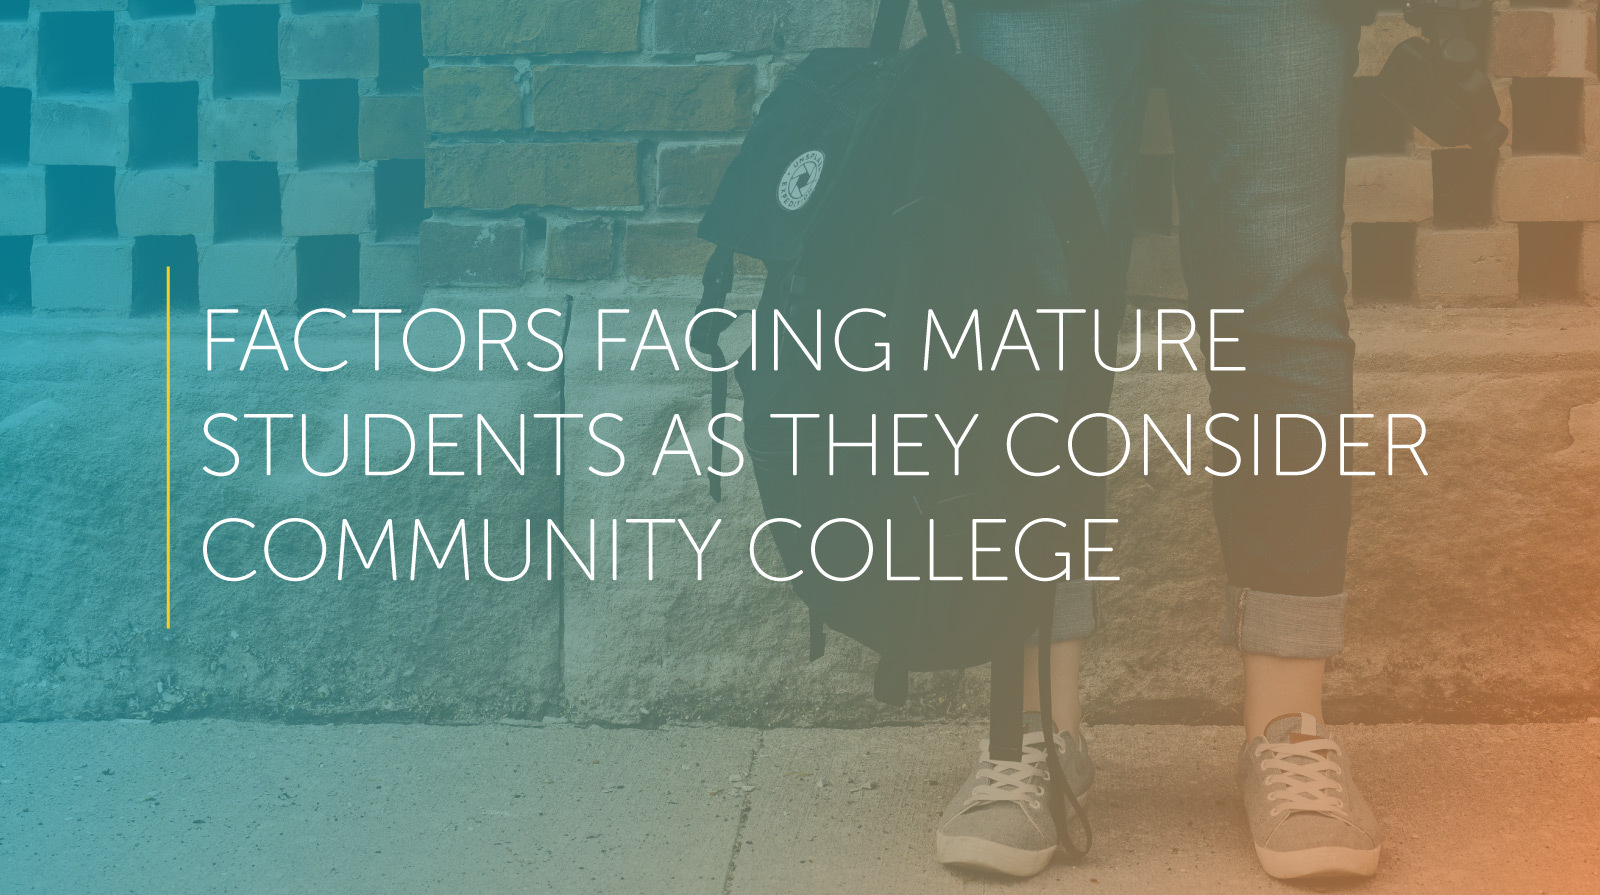 factors facing mature students as they consider community college